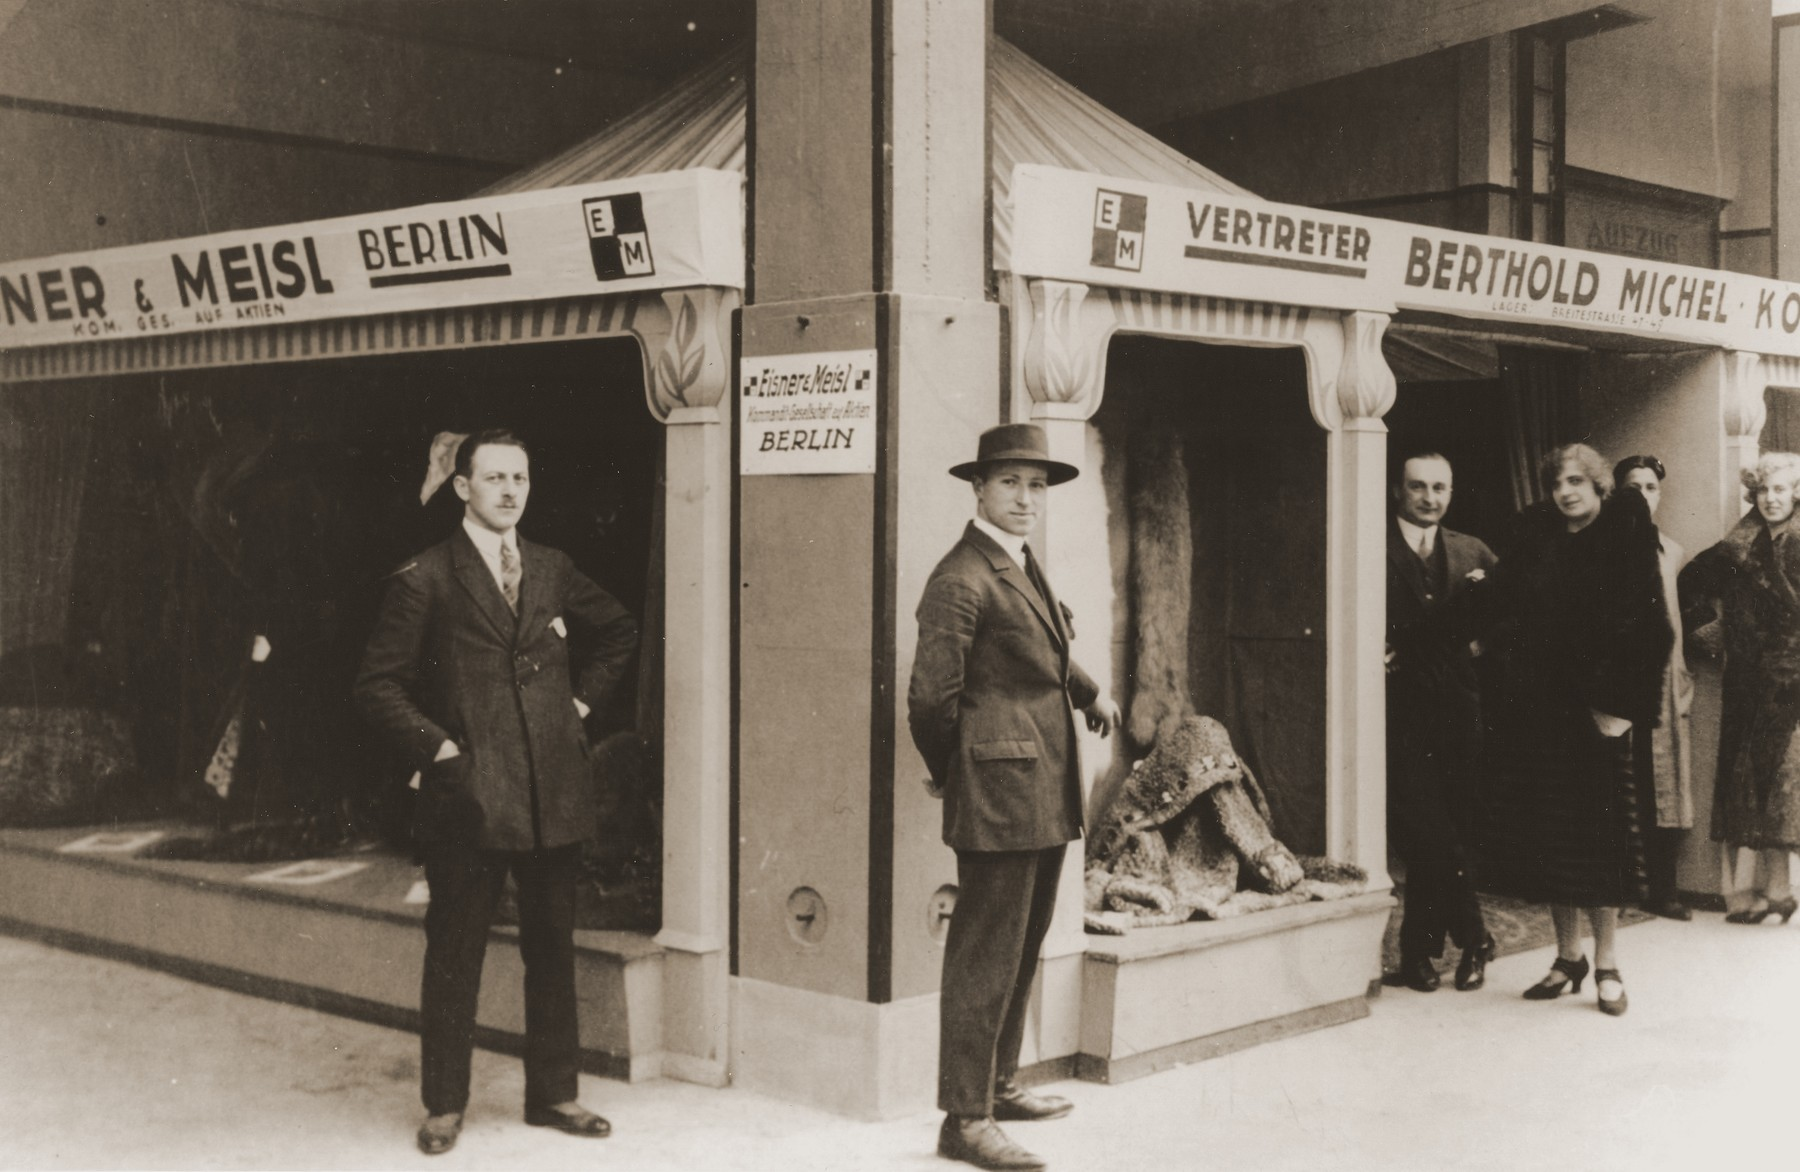 Two Jewish brothers pose outside an exhibition pavillion where their furs are on display.  Pictured are Jakob Michel (left) and Berthold Michel (right).